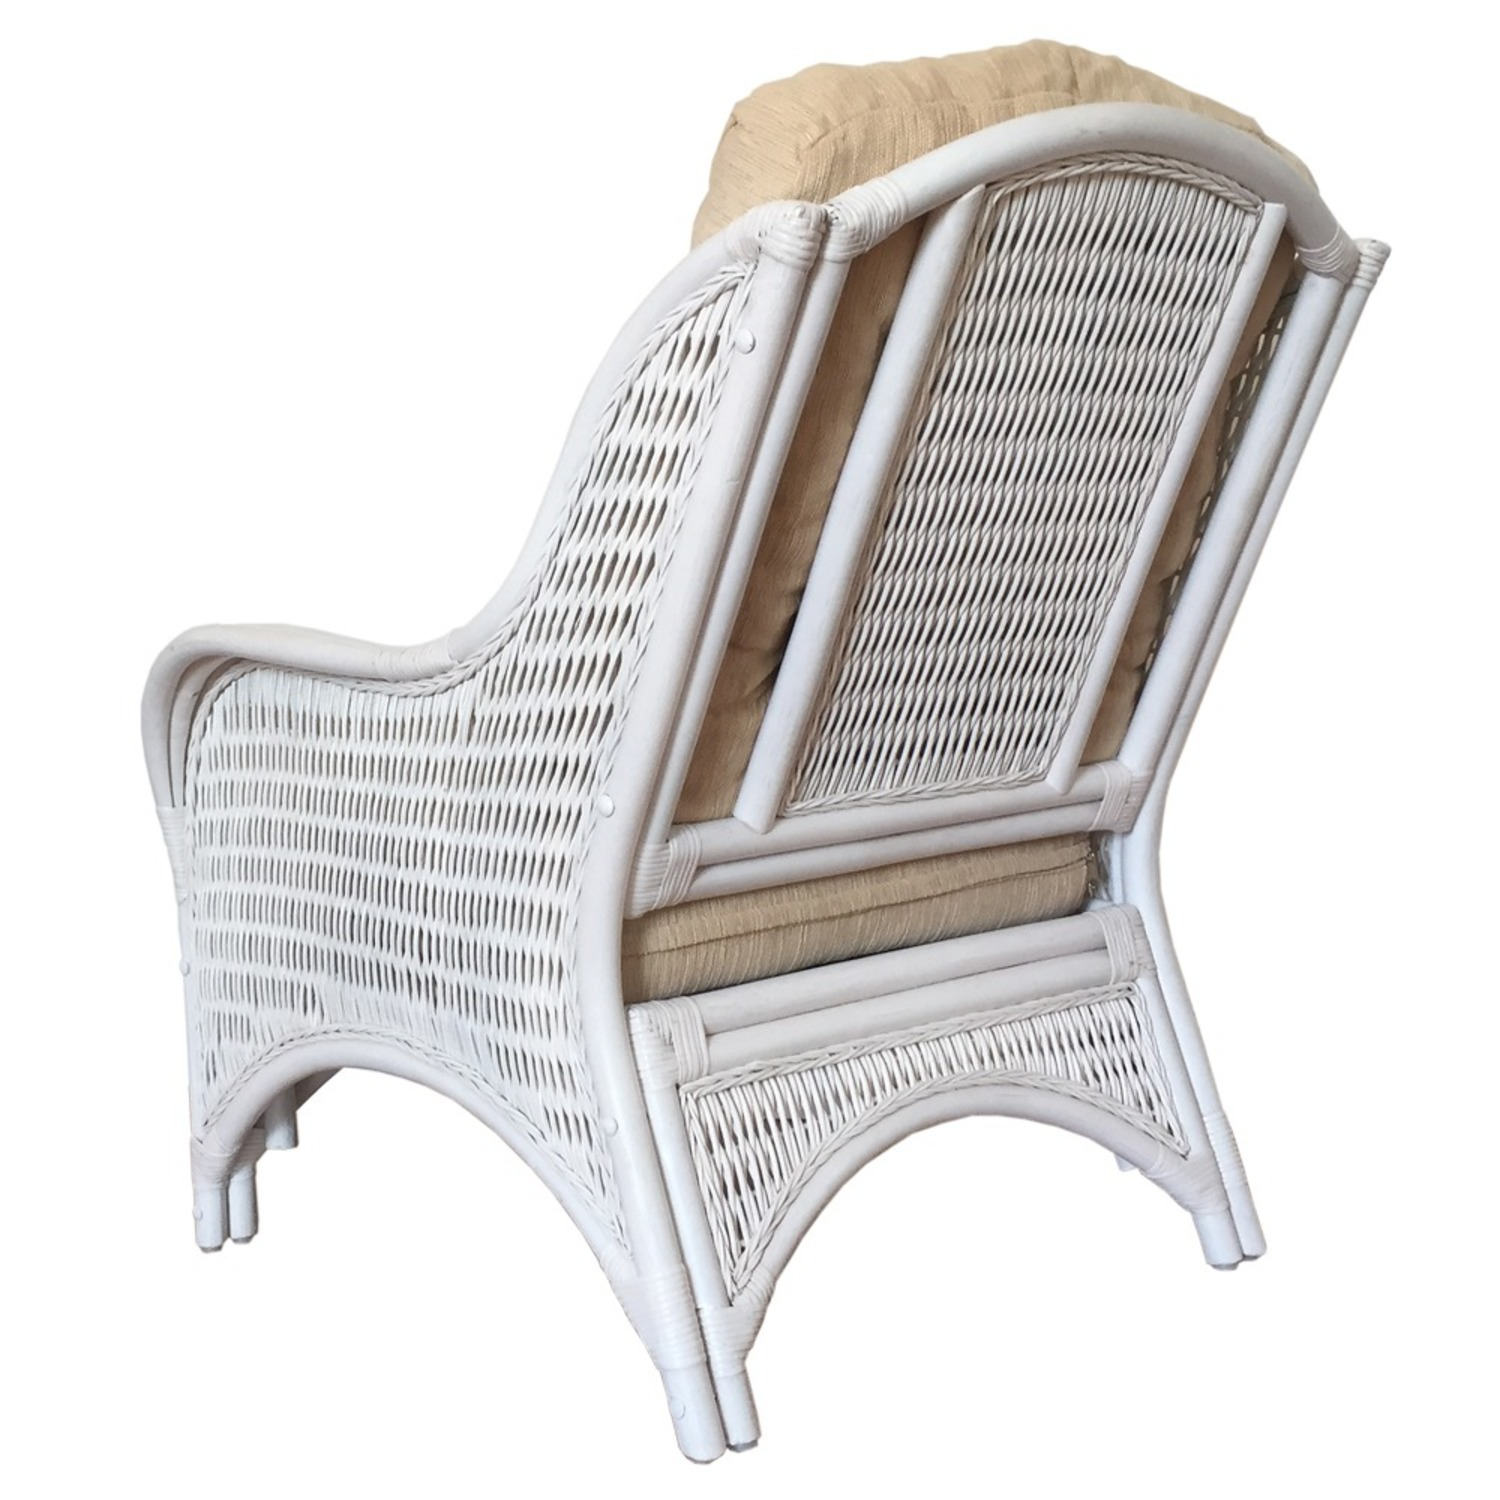 Karmen White Solid Rattan Lounge Chair - image-1